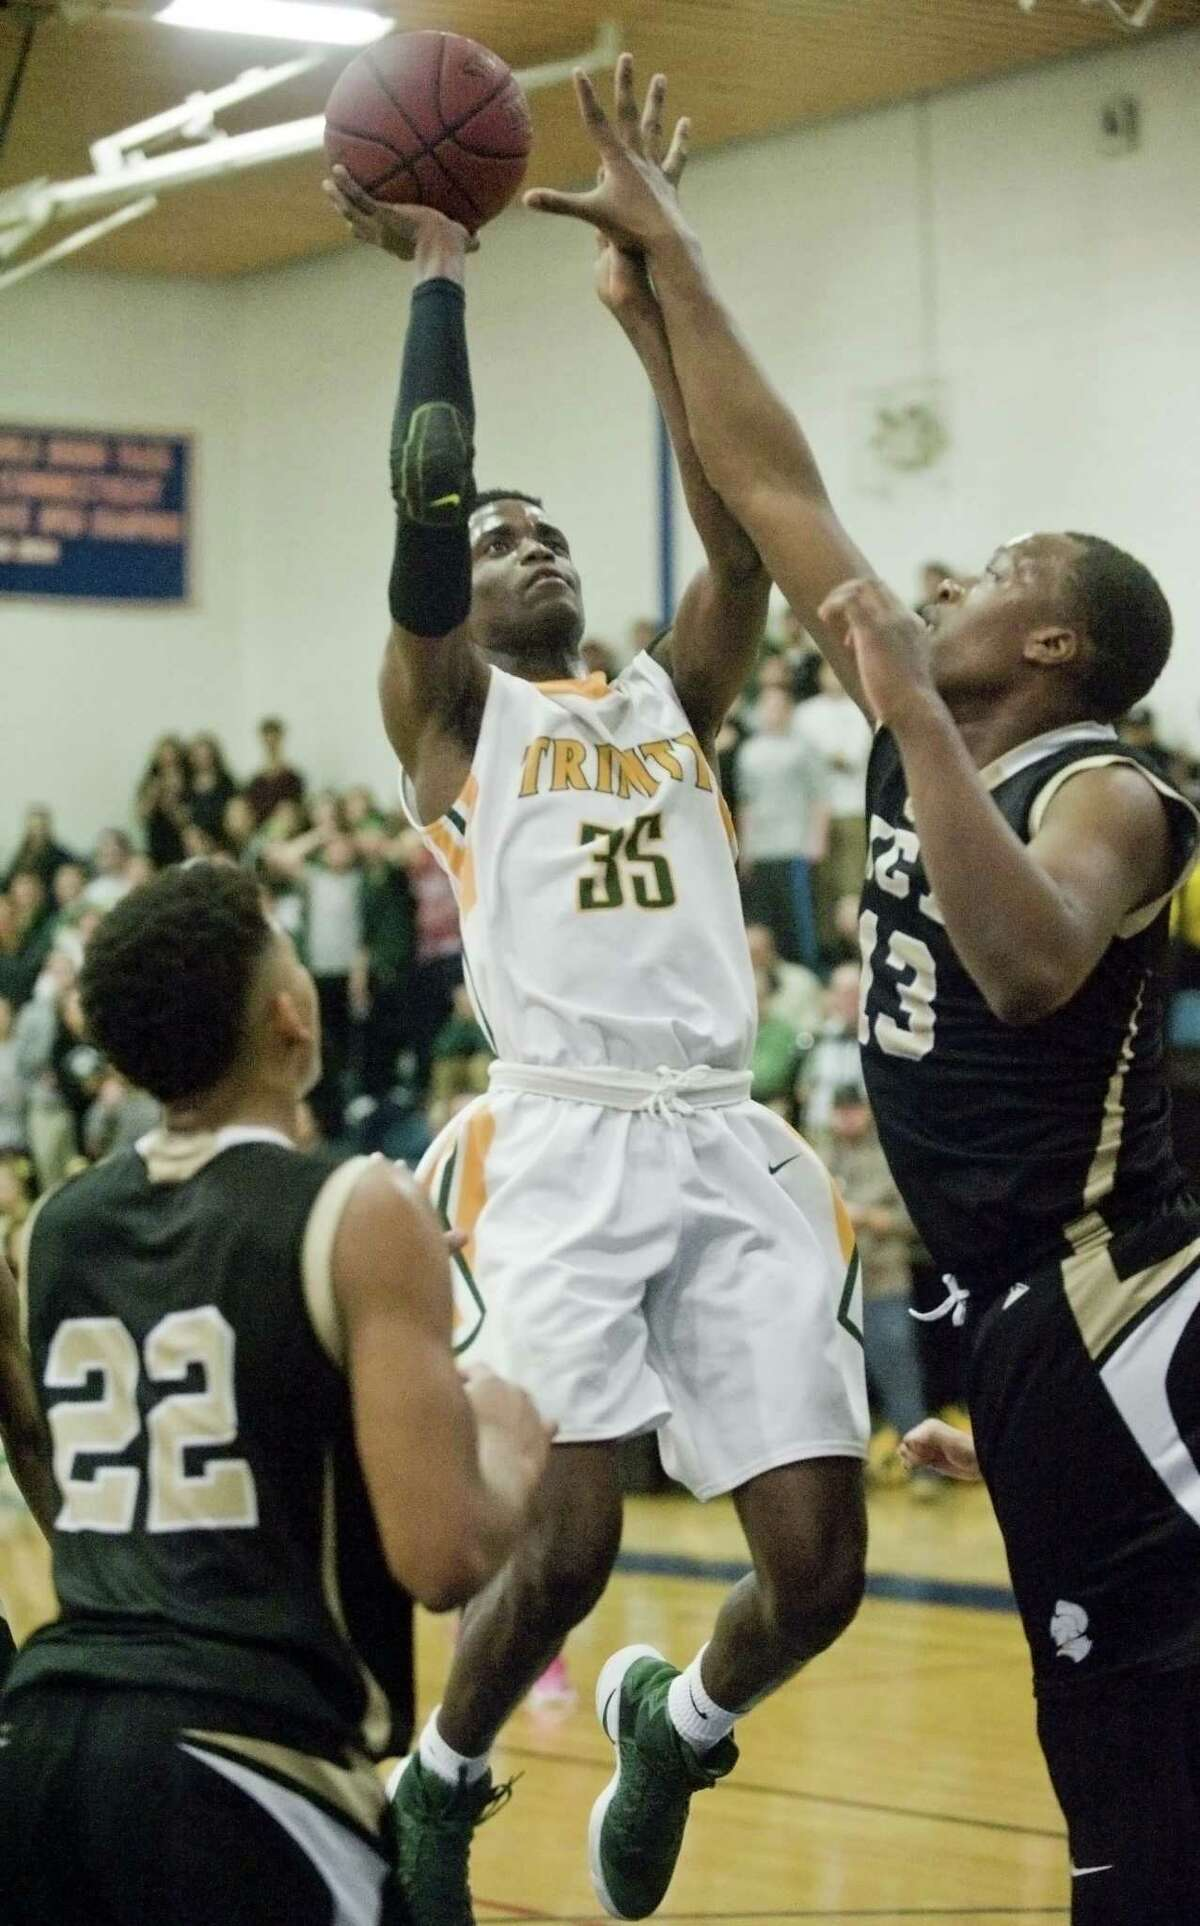 Trinity Catholic High School's Dimitry Moise goes up for the shot as Waterbury Career Academy's Chad McKoy defends during the semifinals played at Danbury High School. Thursday, March 16, 2017